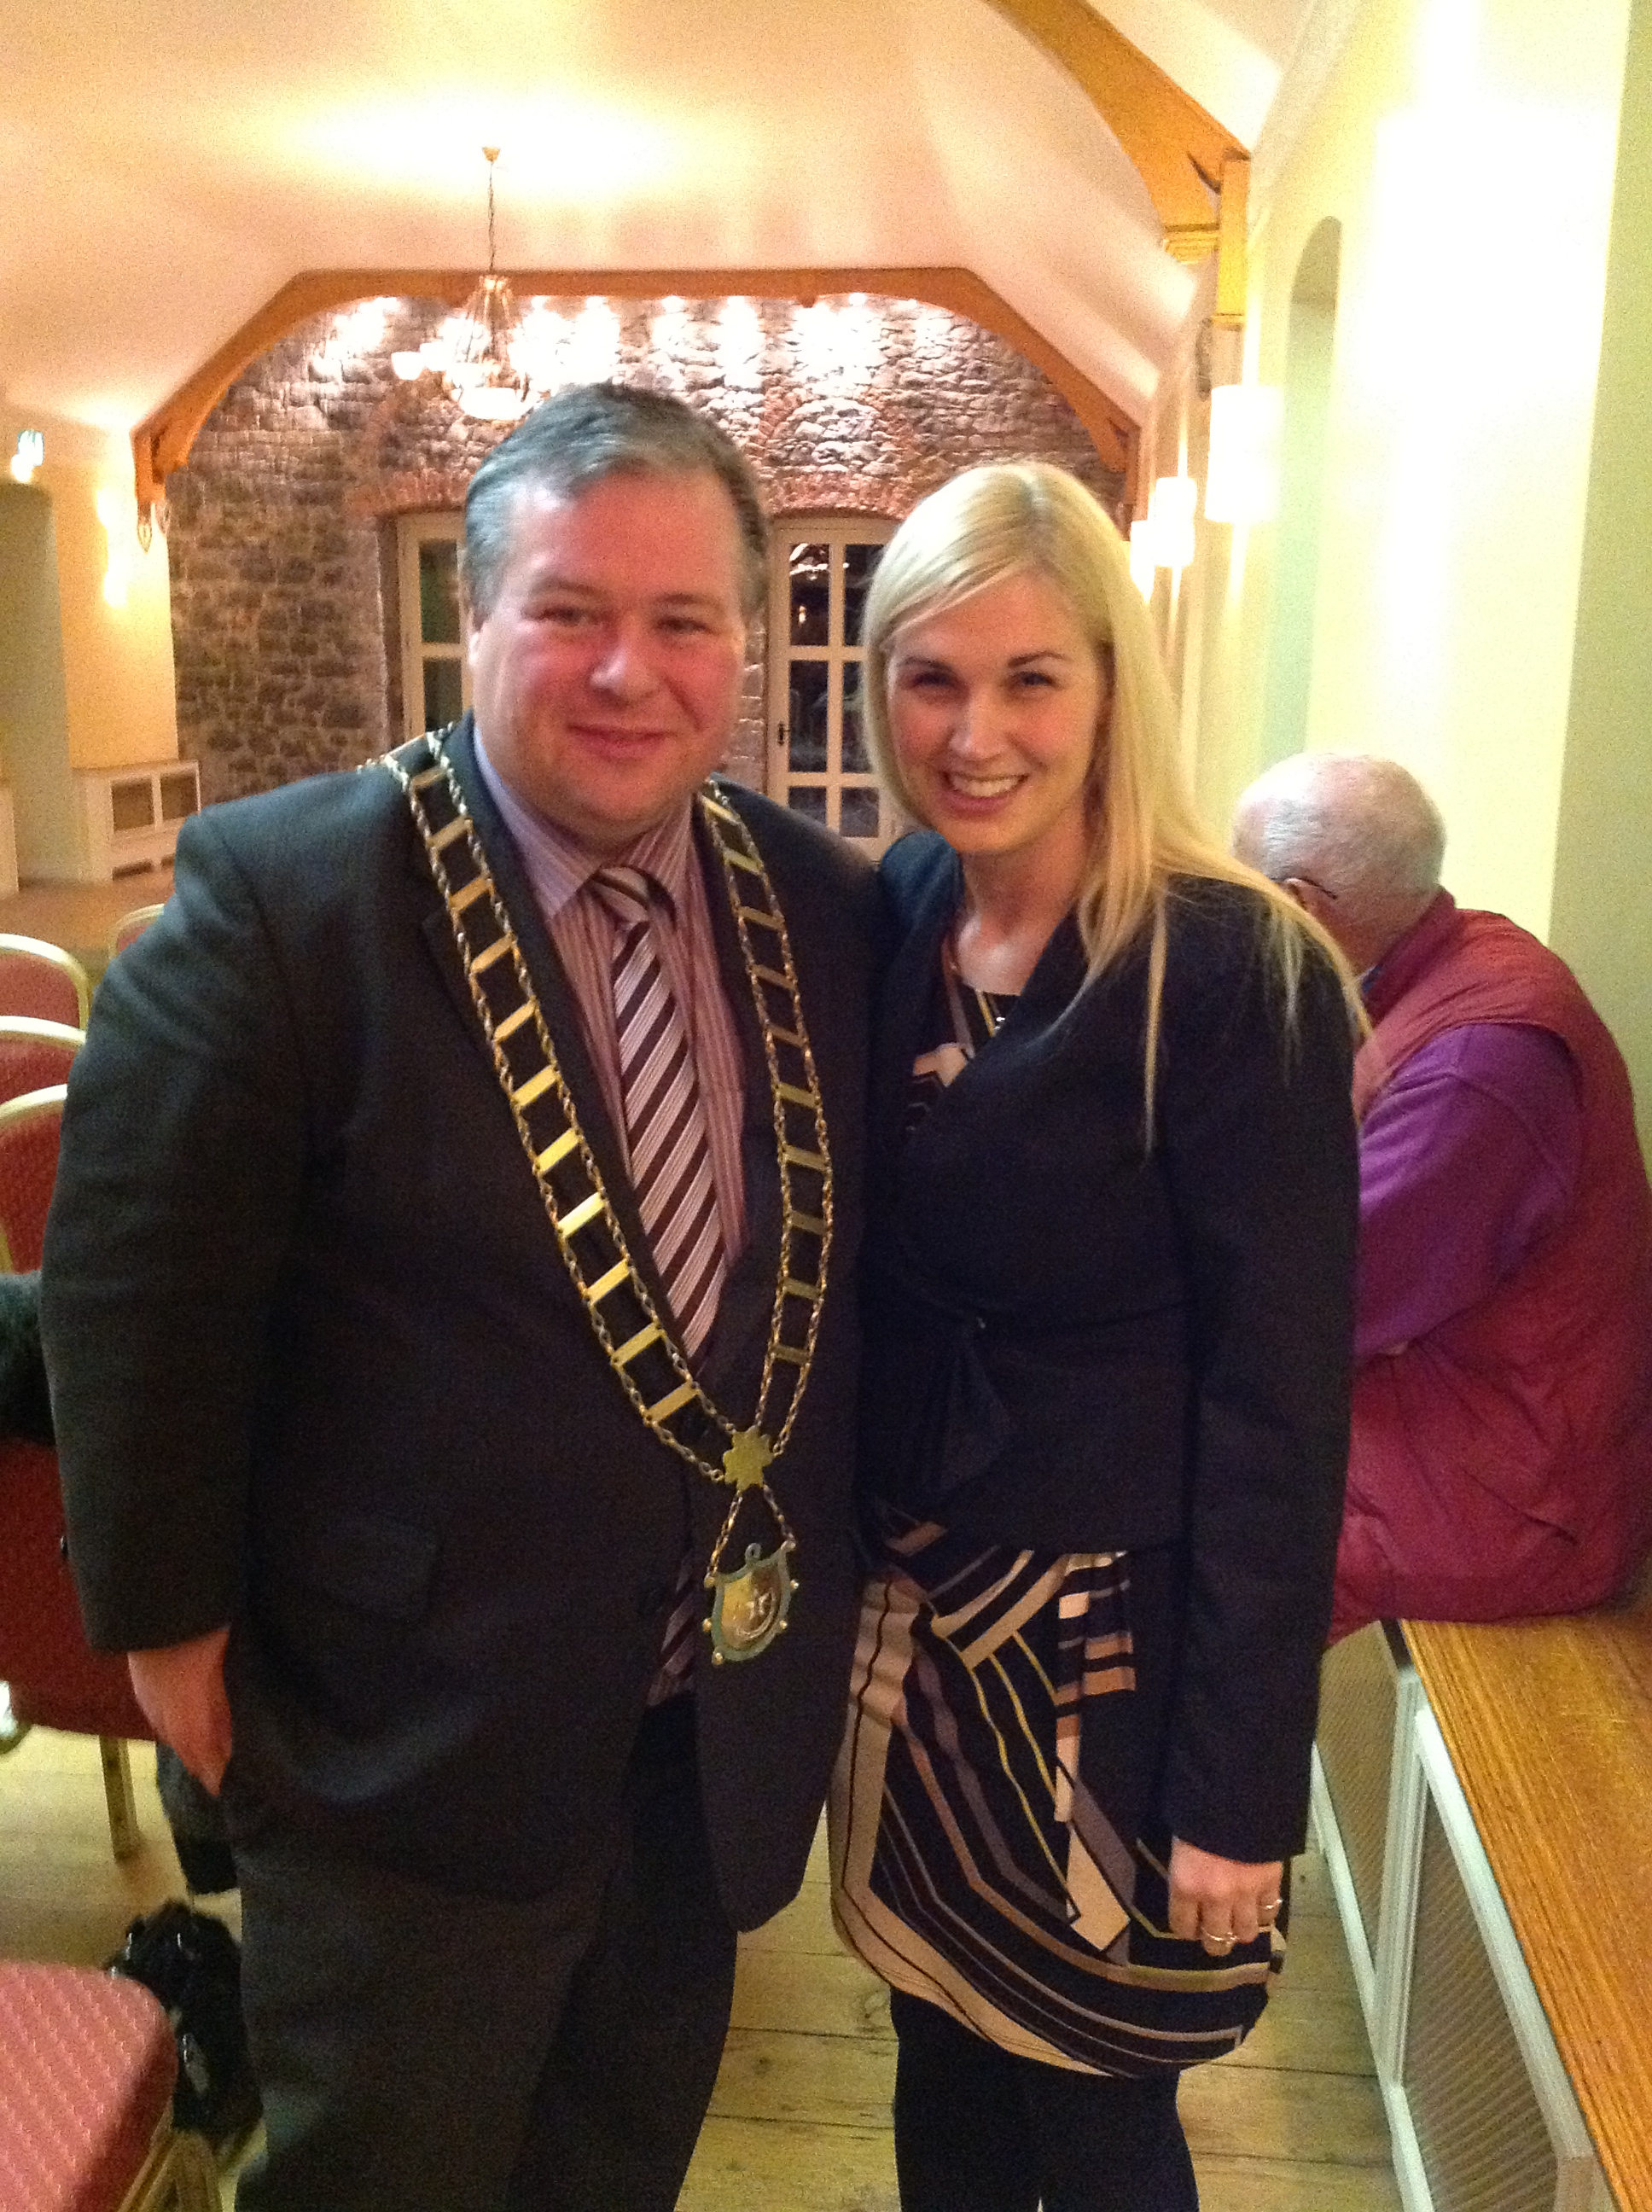 Sinead Kane and Lord Mayor of Drogheda